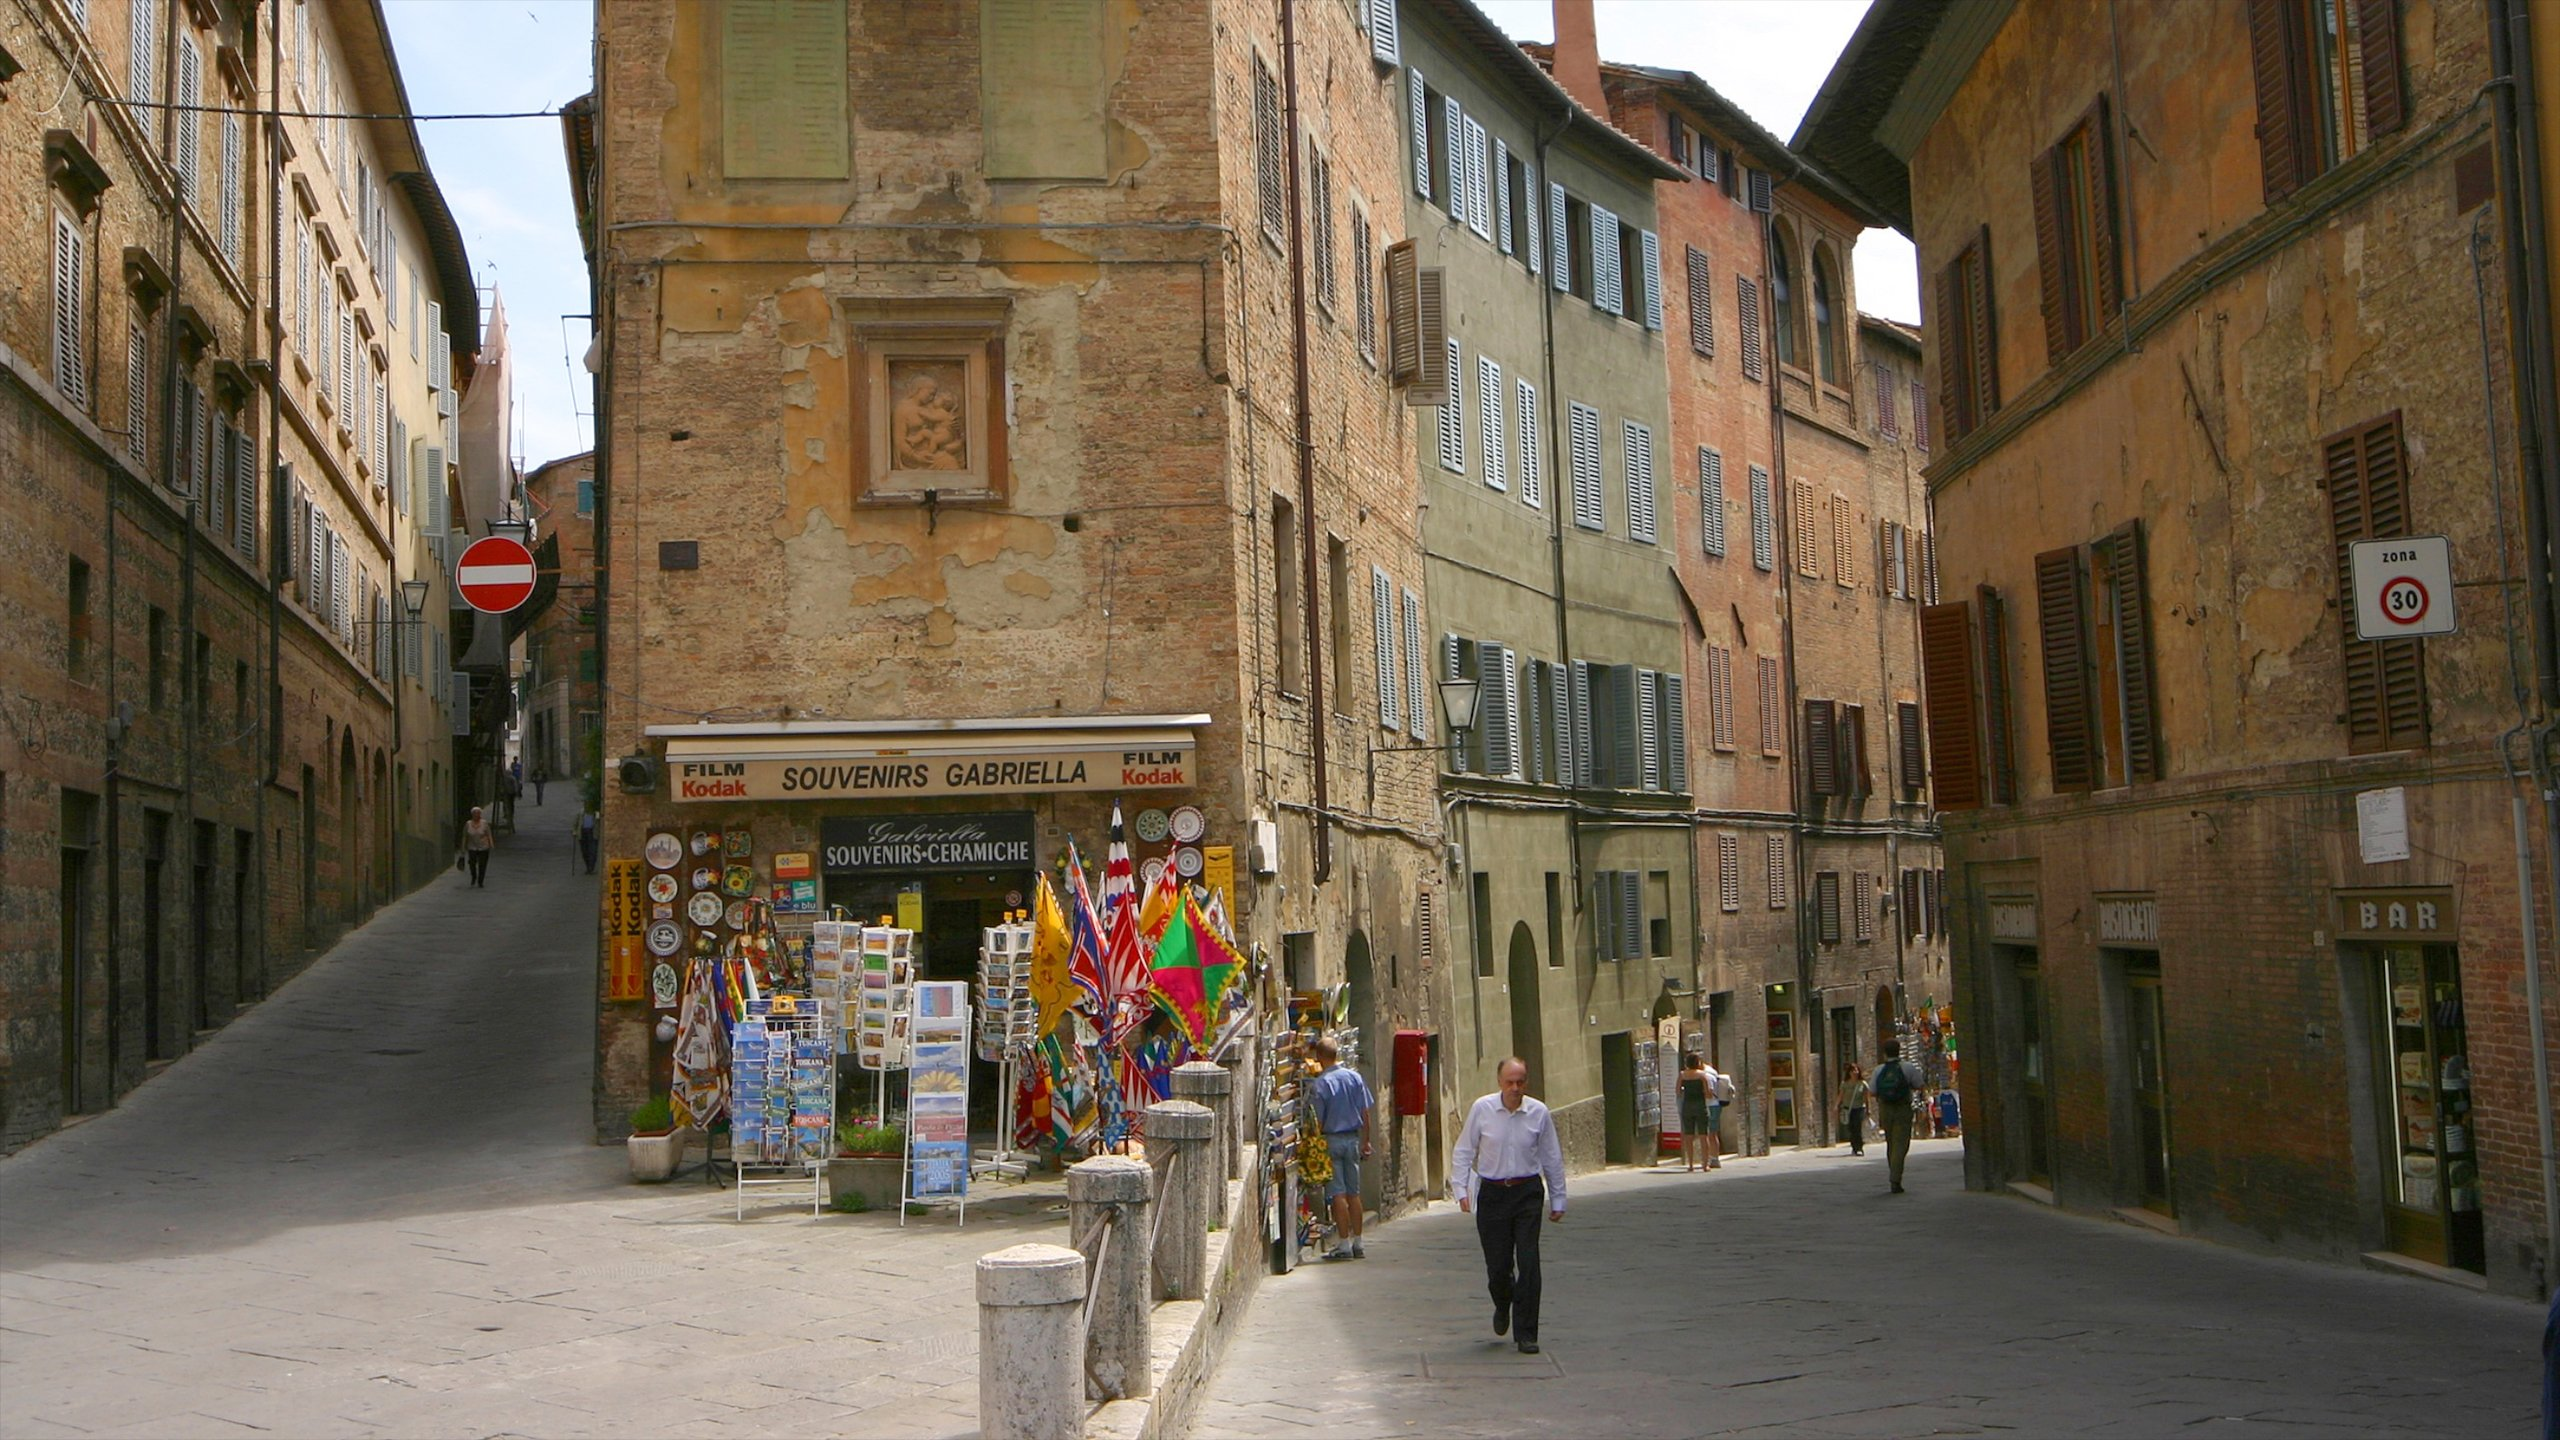 Siena Vacation Rentals $30: Find Top Vacation Homes for Rent   Expedia